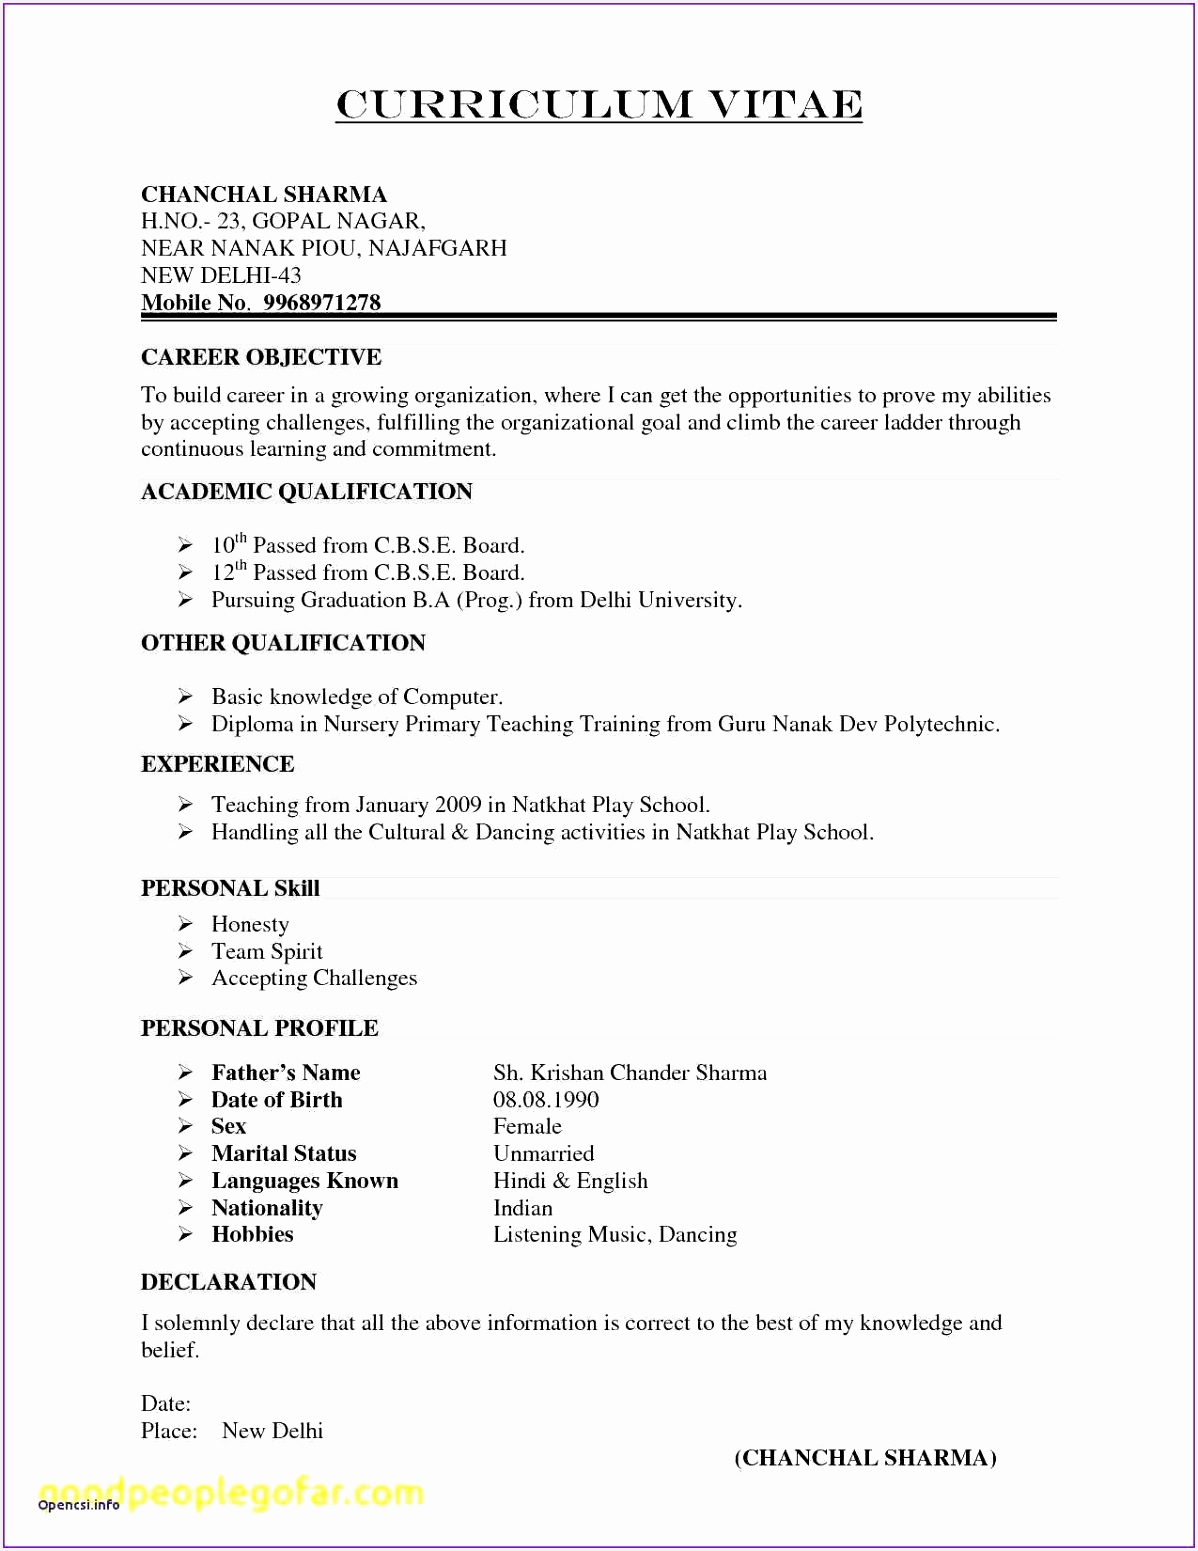 Microsoft Trainer Sample Resume Dcwig Elegant 53 Elegant Microsoft Word Free Resume Templates Awesome Resume Of Microsoft Trainer Sample Resume Bvgrh Unique Sample Pitch for Resume Popular Good Examples Resumes Inspirational